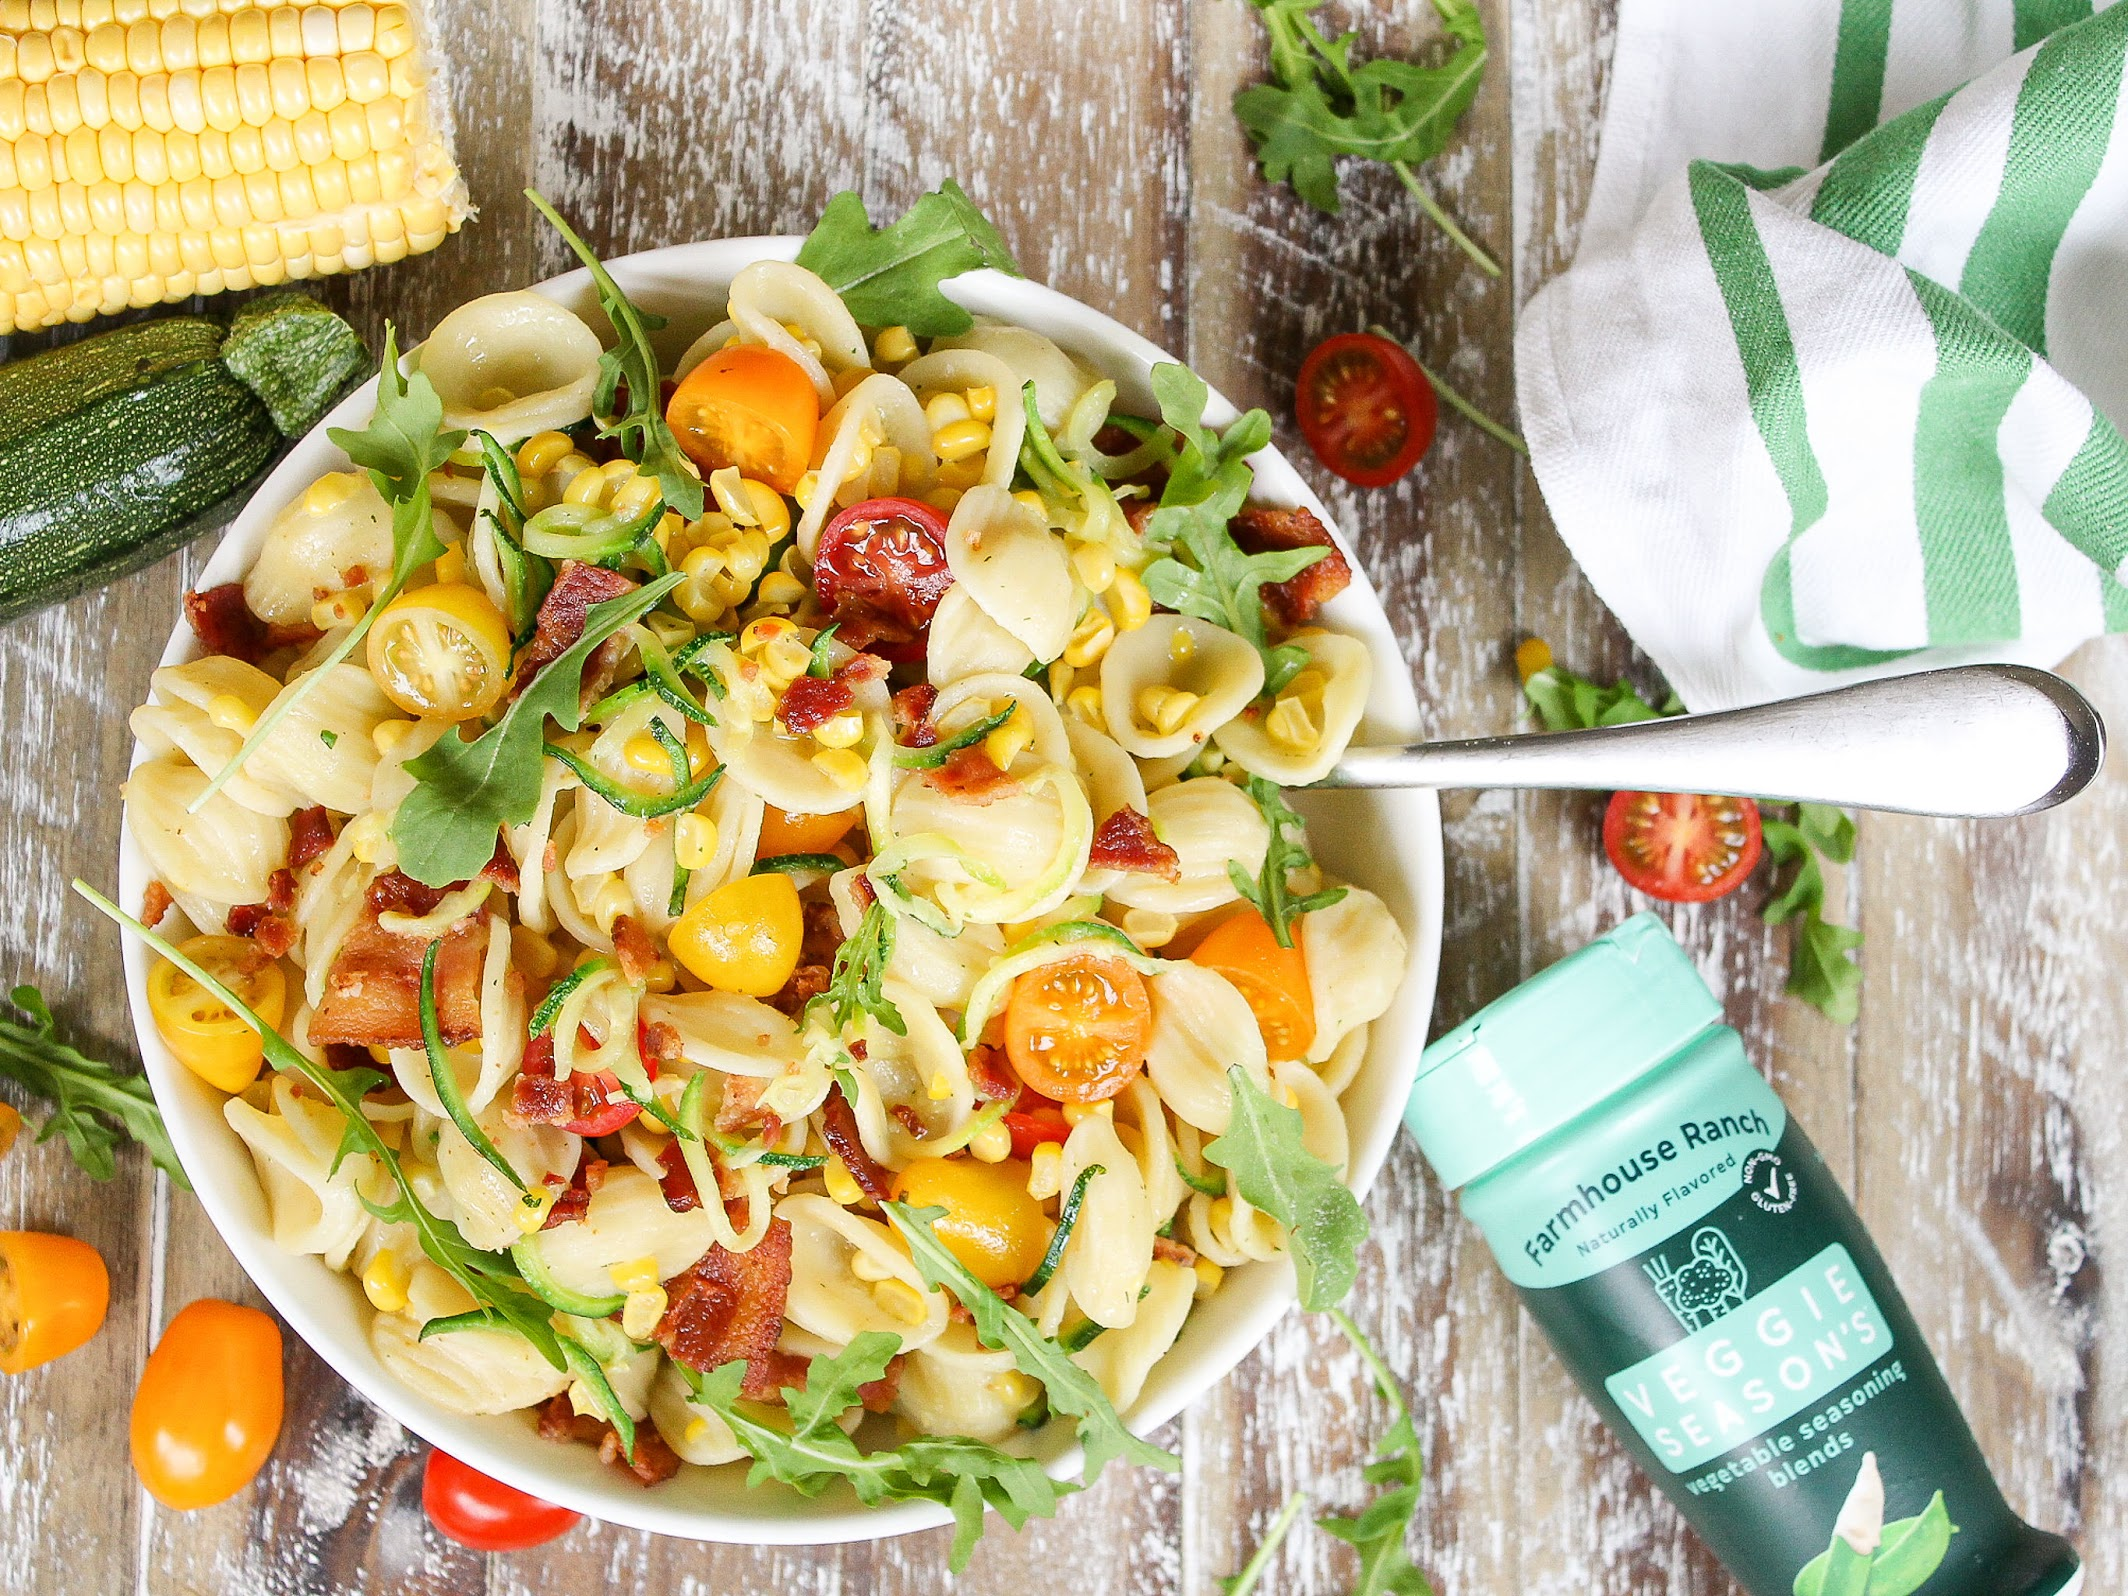 Make Mealtime Enjoyable With Veggie Season's - Try My Ranch Bacon Pasta Salad With Zucchini & Corn on I Heart Publix 5